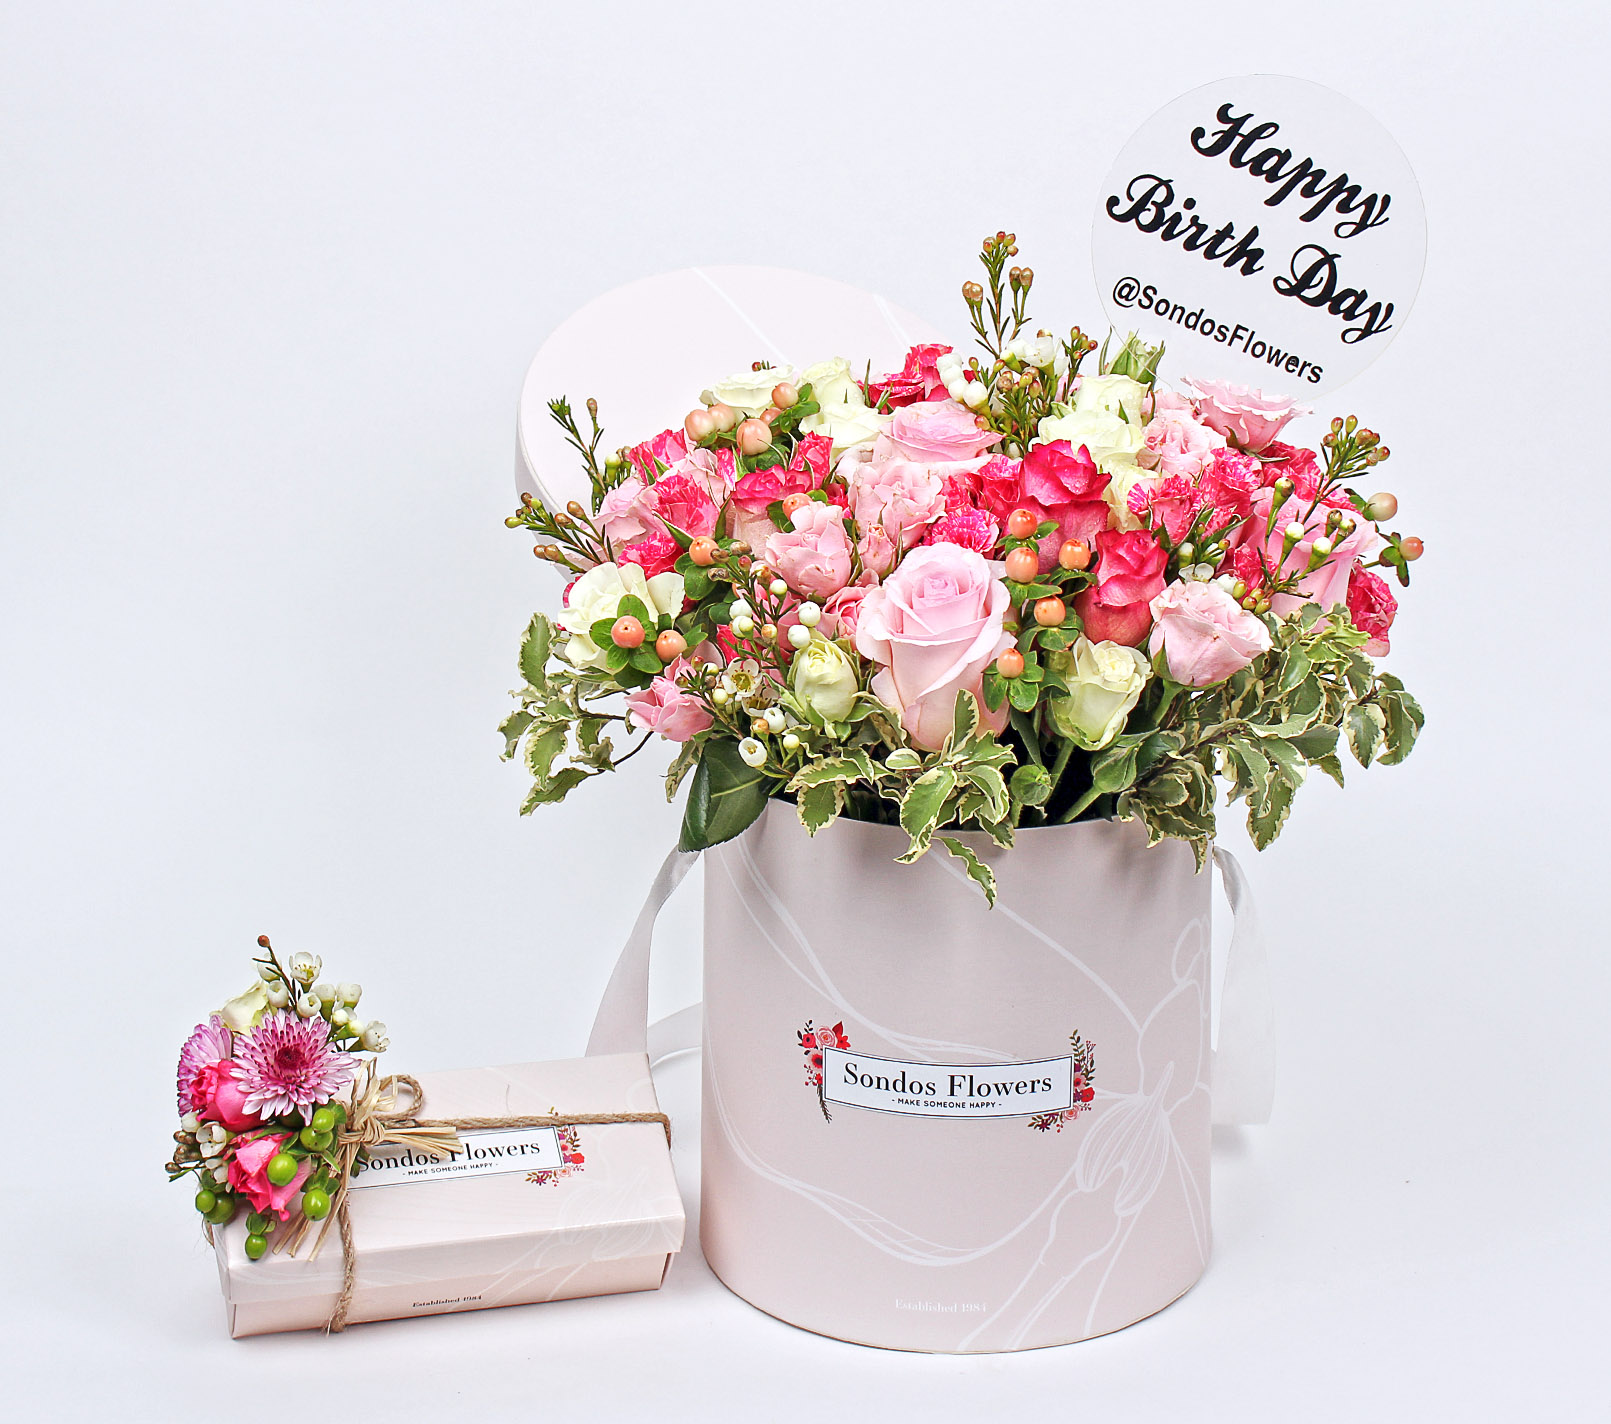 Just Pretty Send Fresh Flowers Gifts Online Kuwait Sondos Flowers